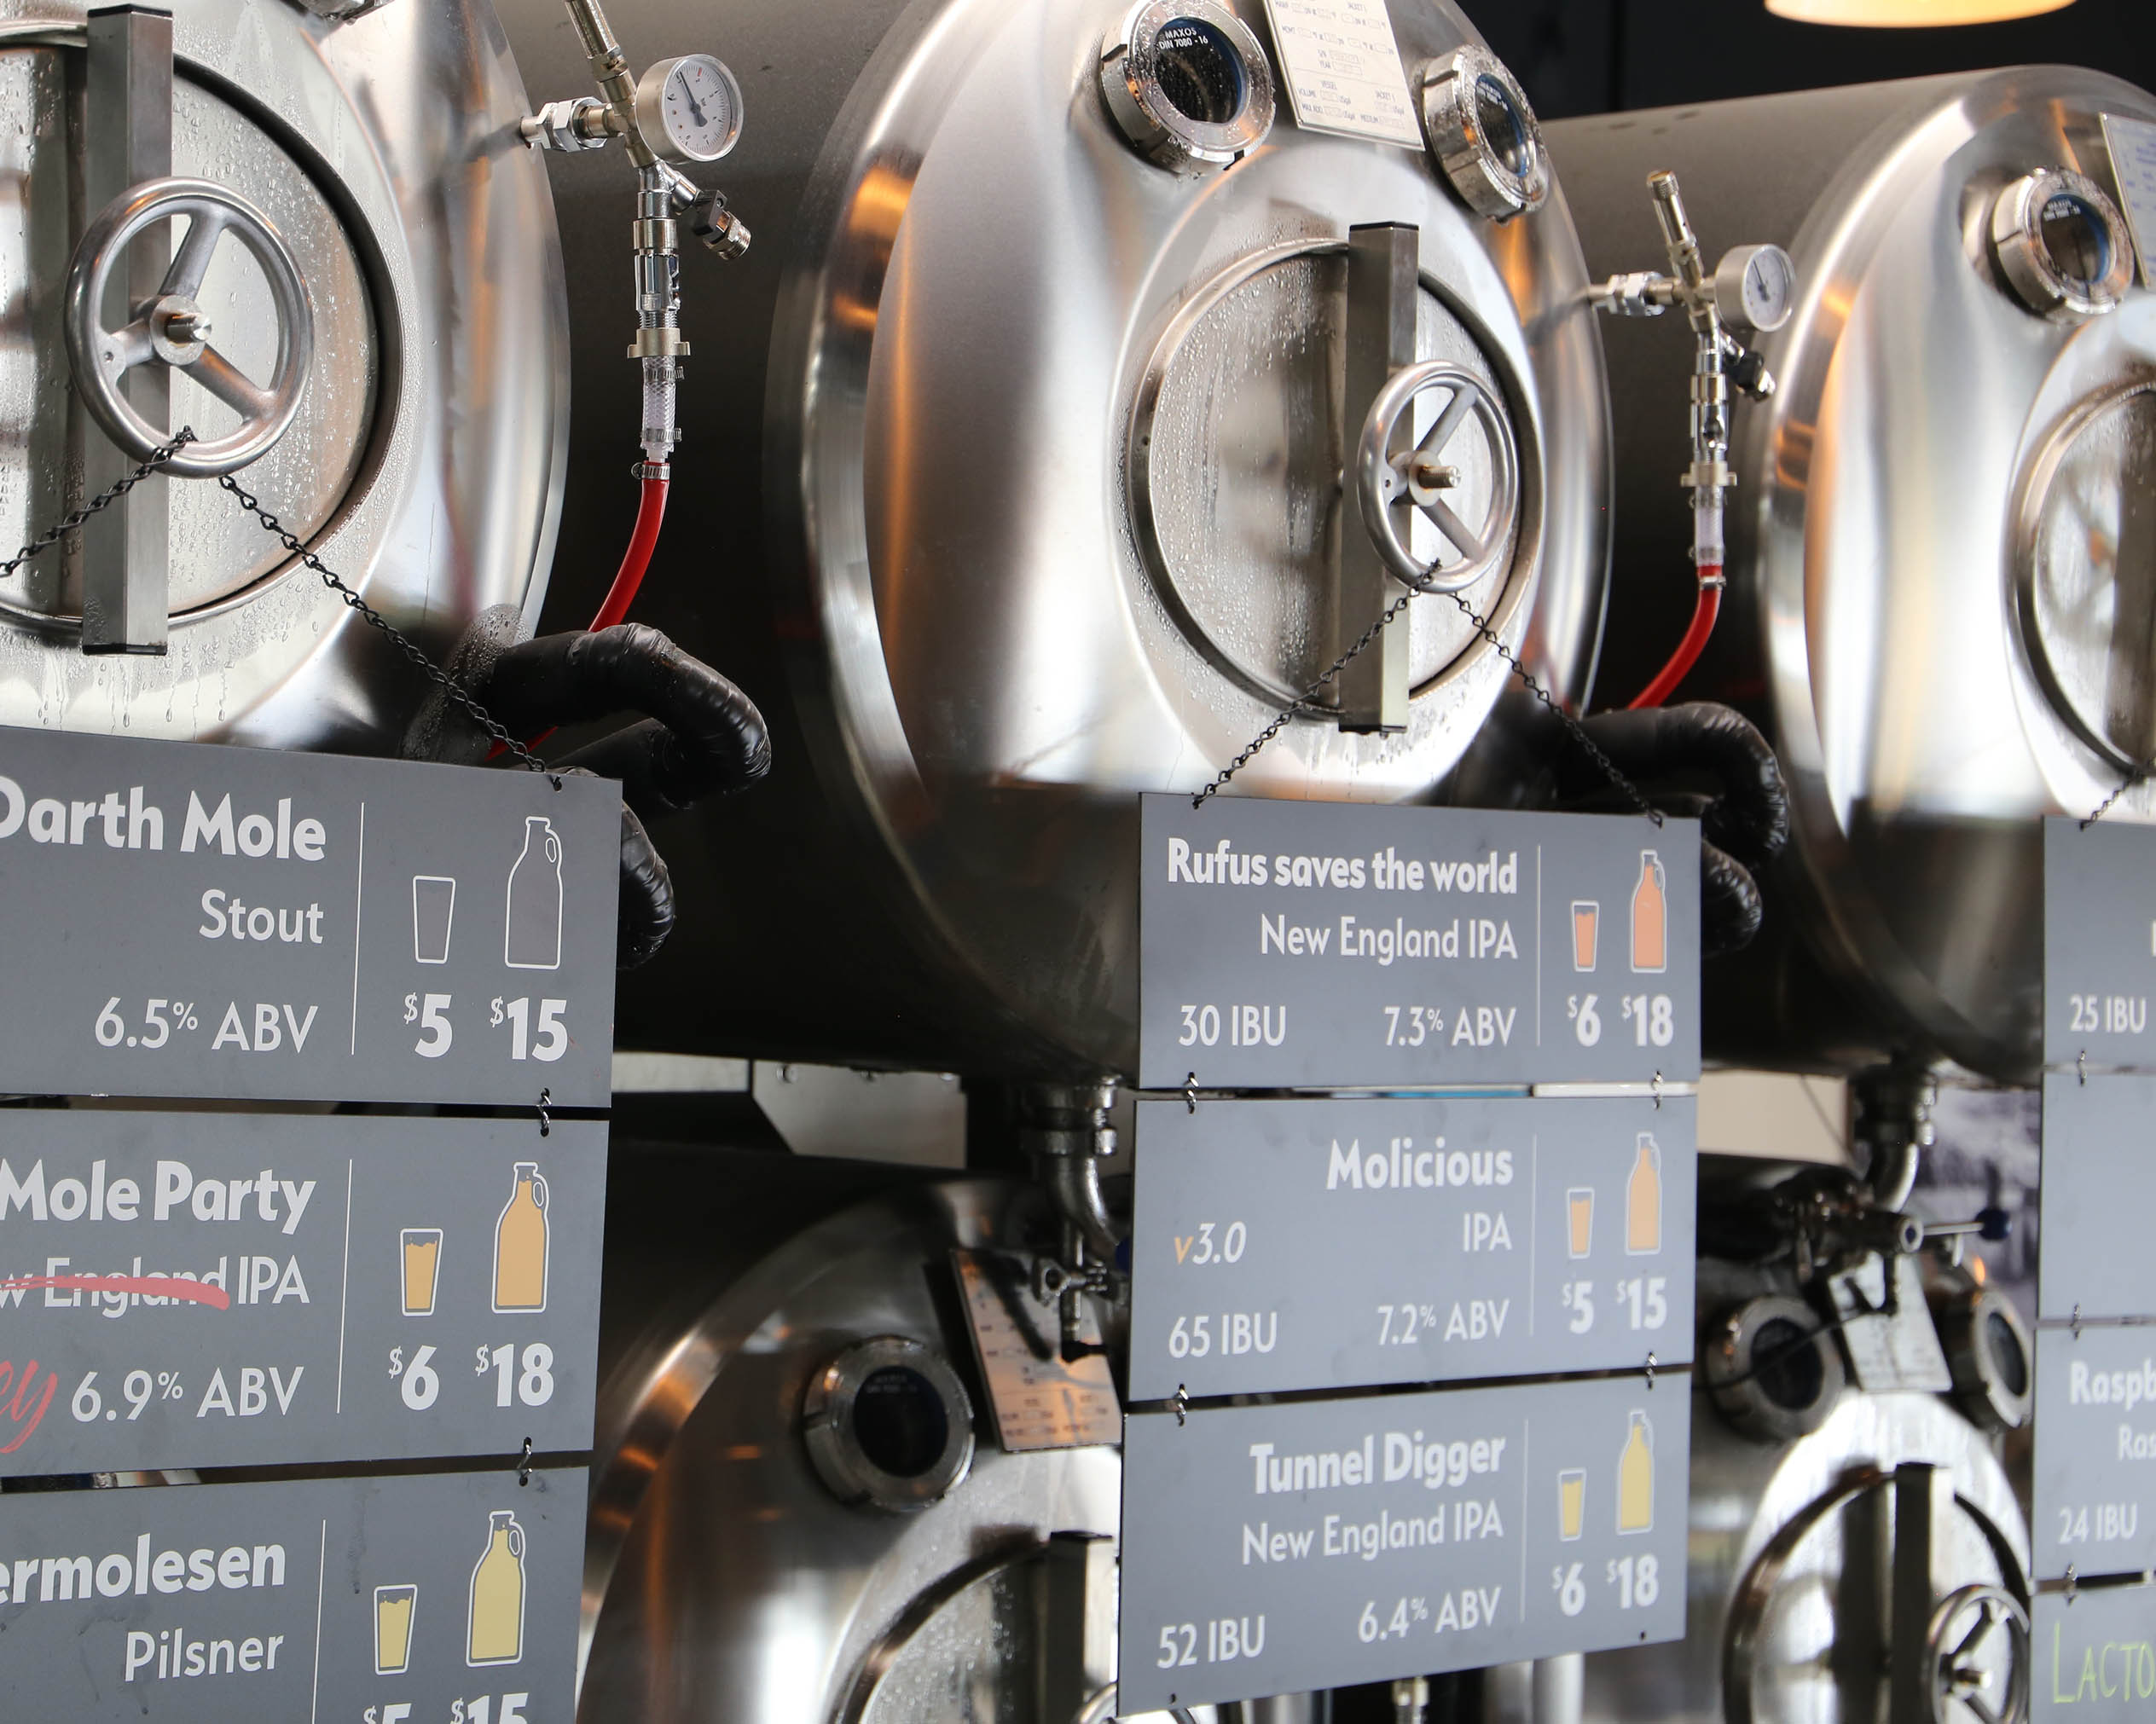 Kettle with signs indicating which beer is in which kettle